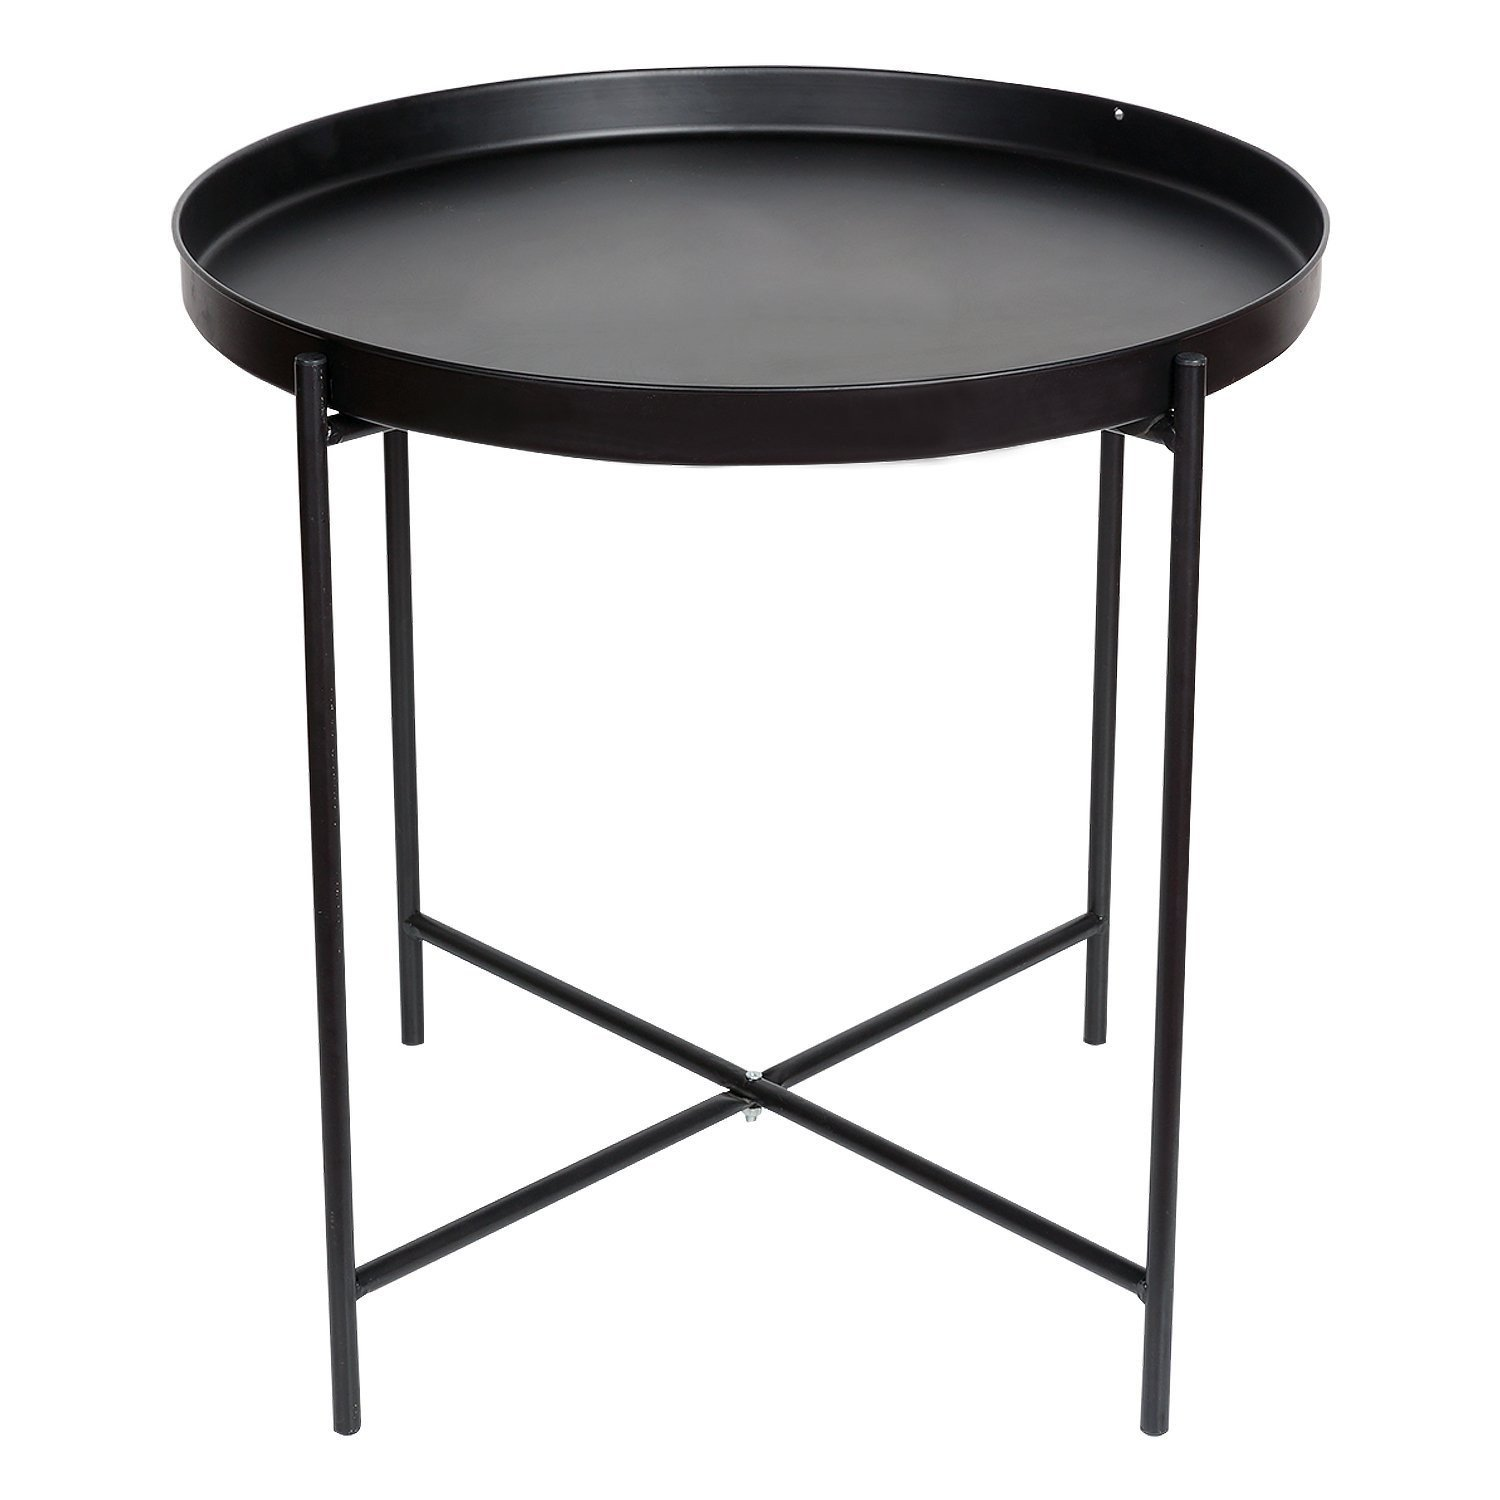 Indoor Multi-function Accent table Study Computer Desk Bedroom Living Room Modern Style End Table Sofa Side Table Coffee Table Folding Tray Side Table